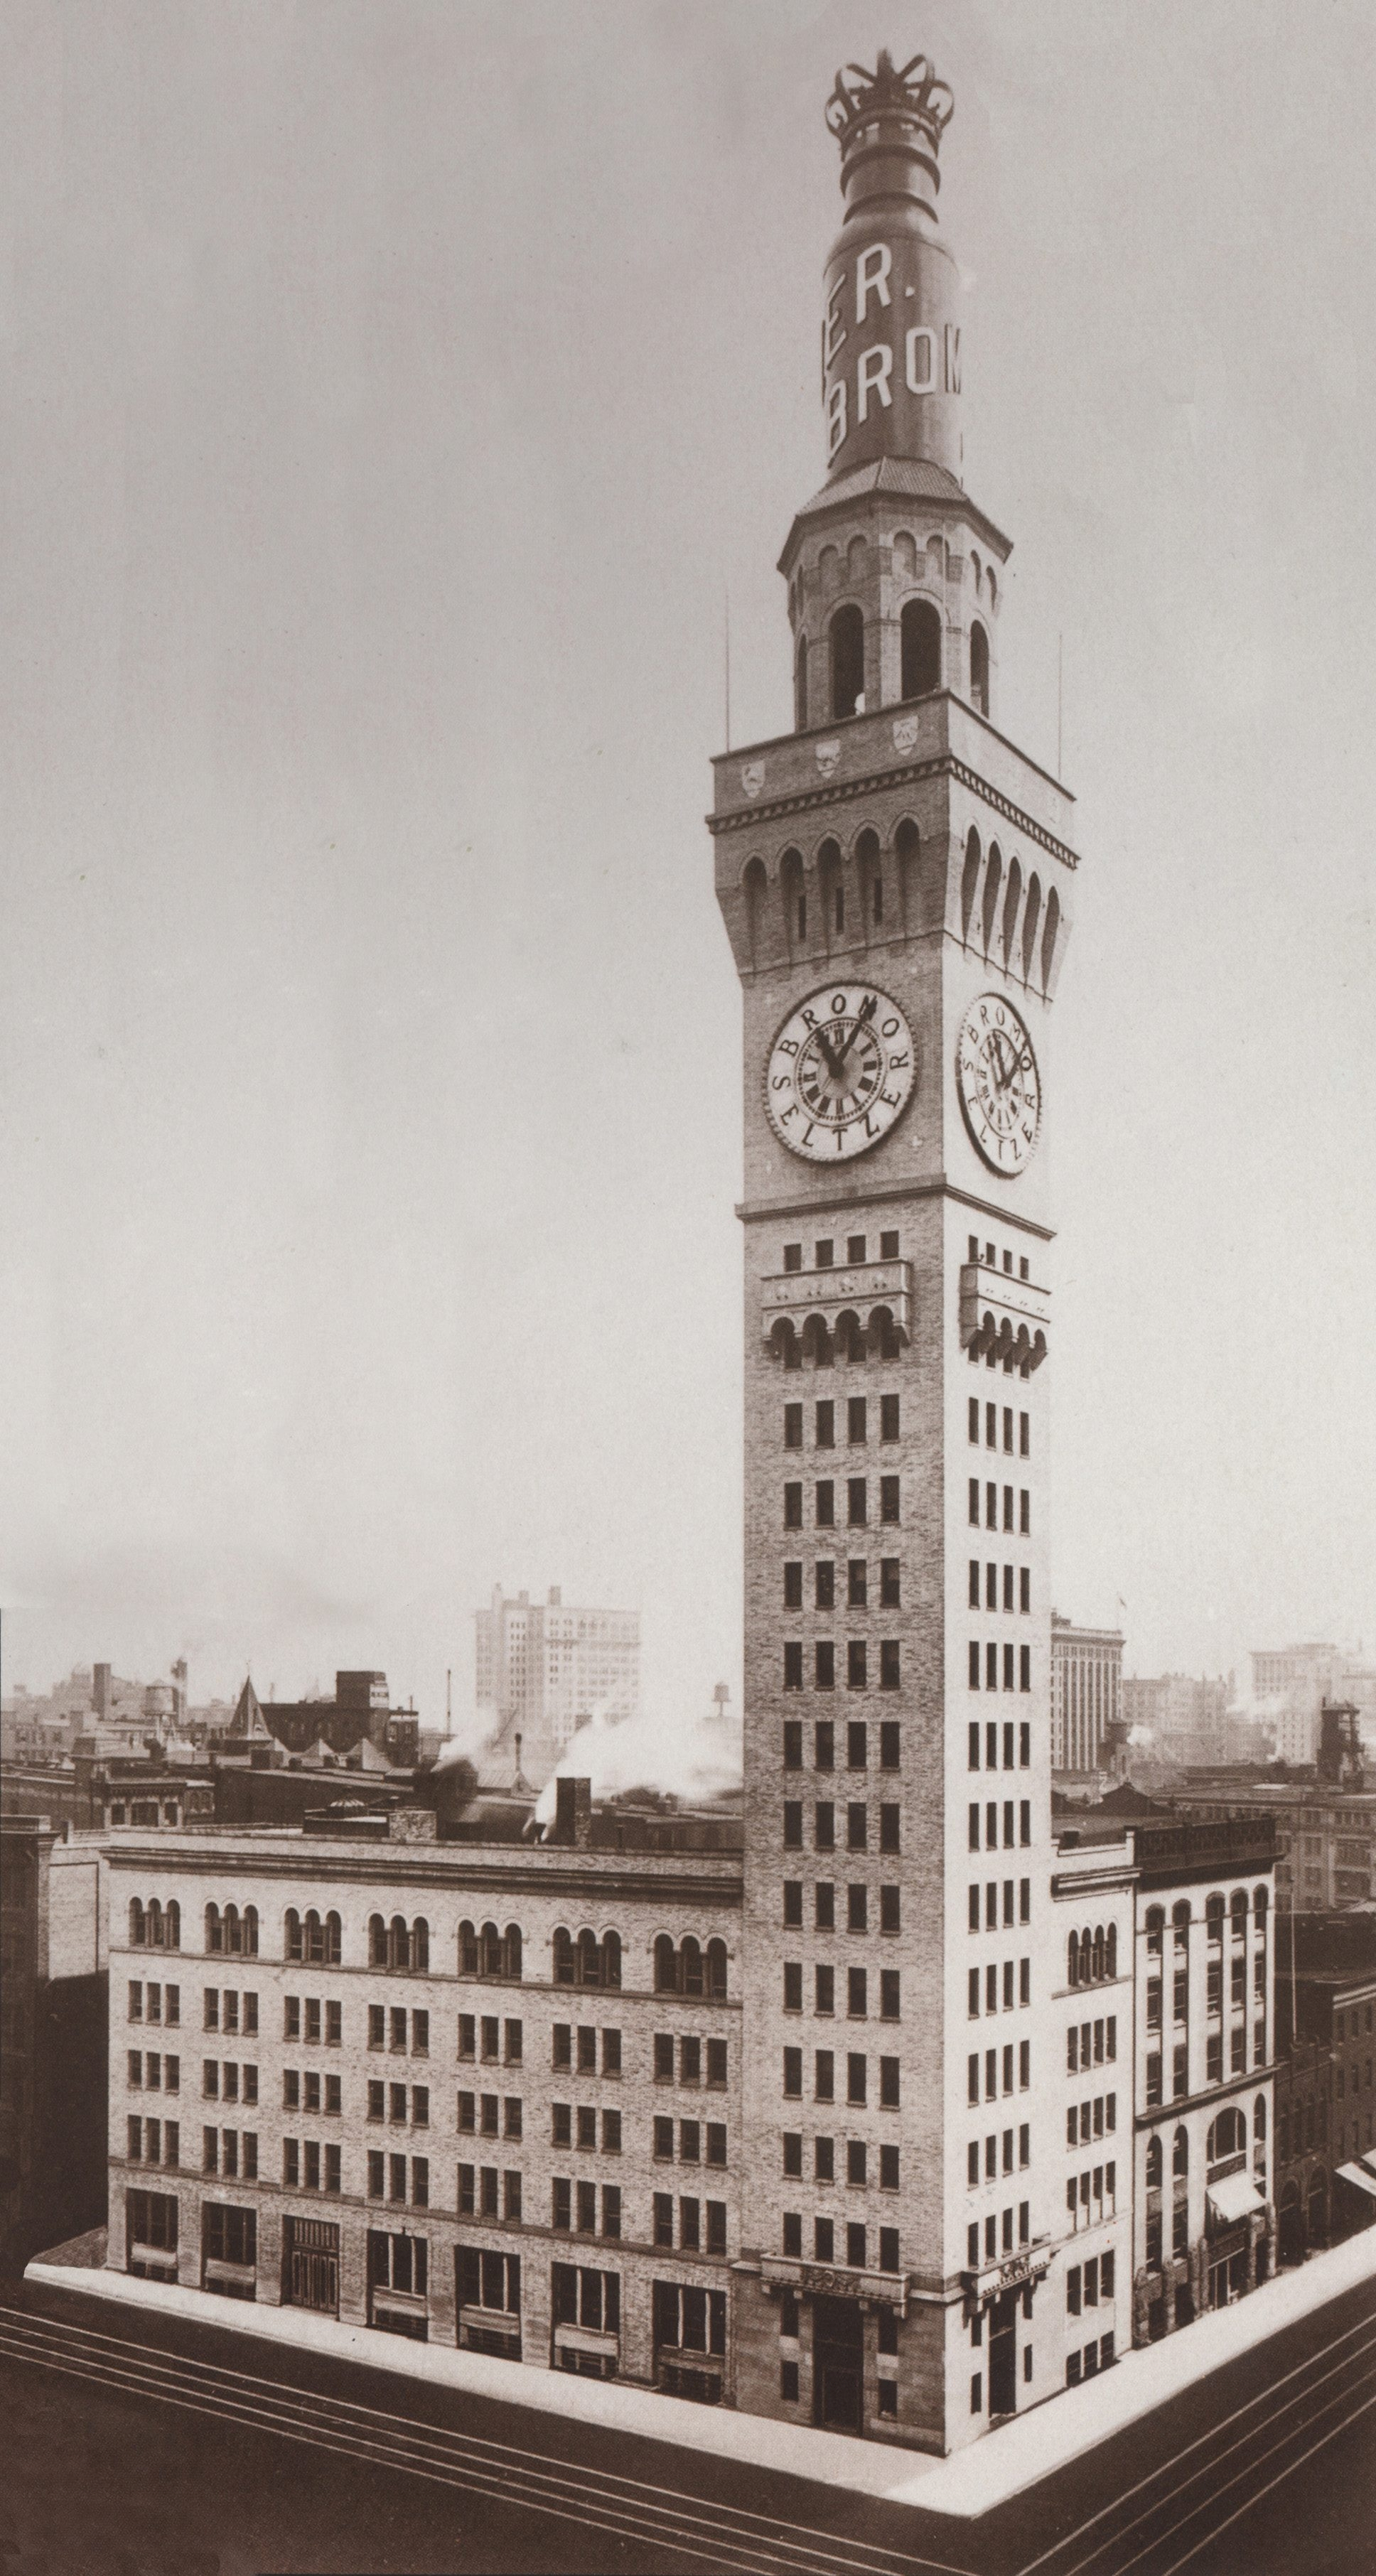 At left is Baltimore's Bromo Selzter Arts Tower prior to 1936 when it was topped with a 51-foot replica Bromo-Seltzer bottle. Today the building is the cornerstone of the Bromo Arts District on the city's west side.